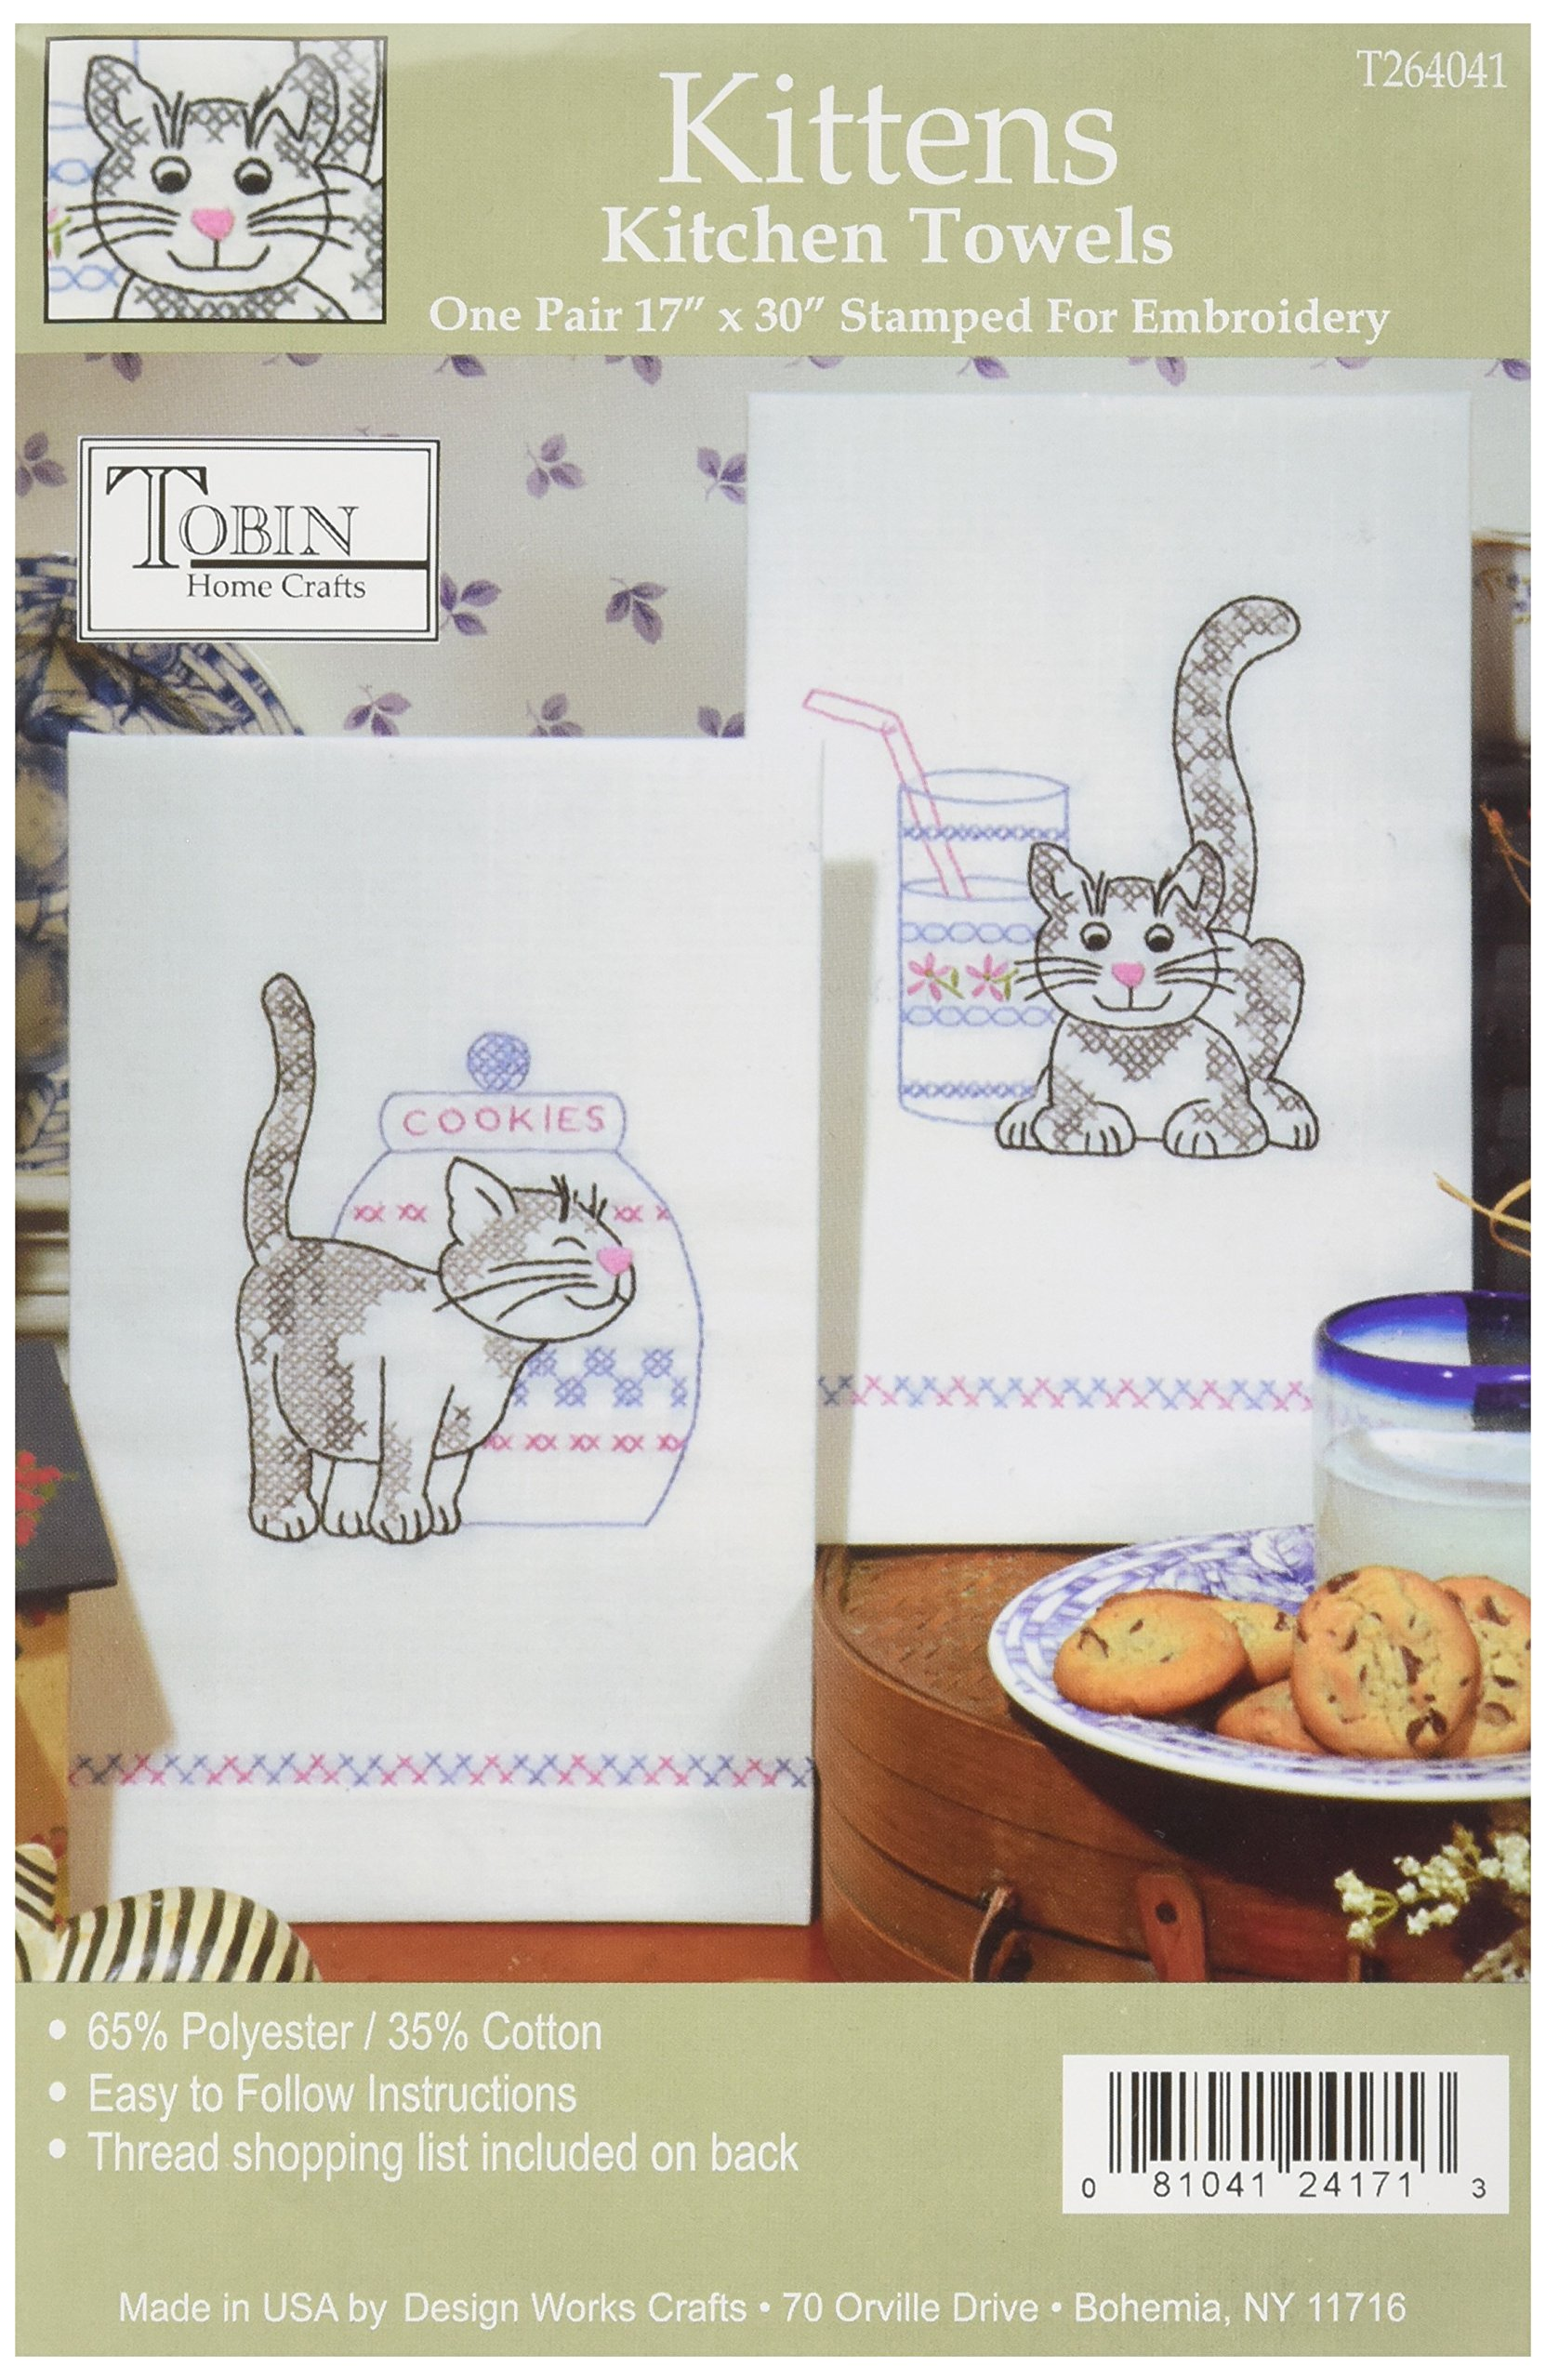 Design Works Crafts T264102 Kittens Towels 17 x 30 Stamped Kitchen Towels for Embroidery Set of 2